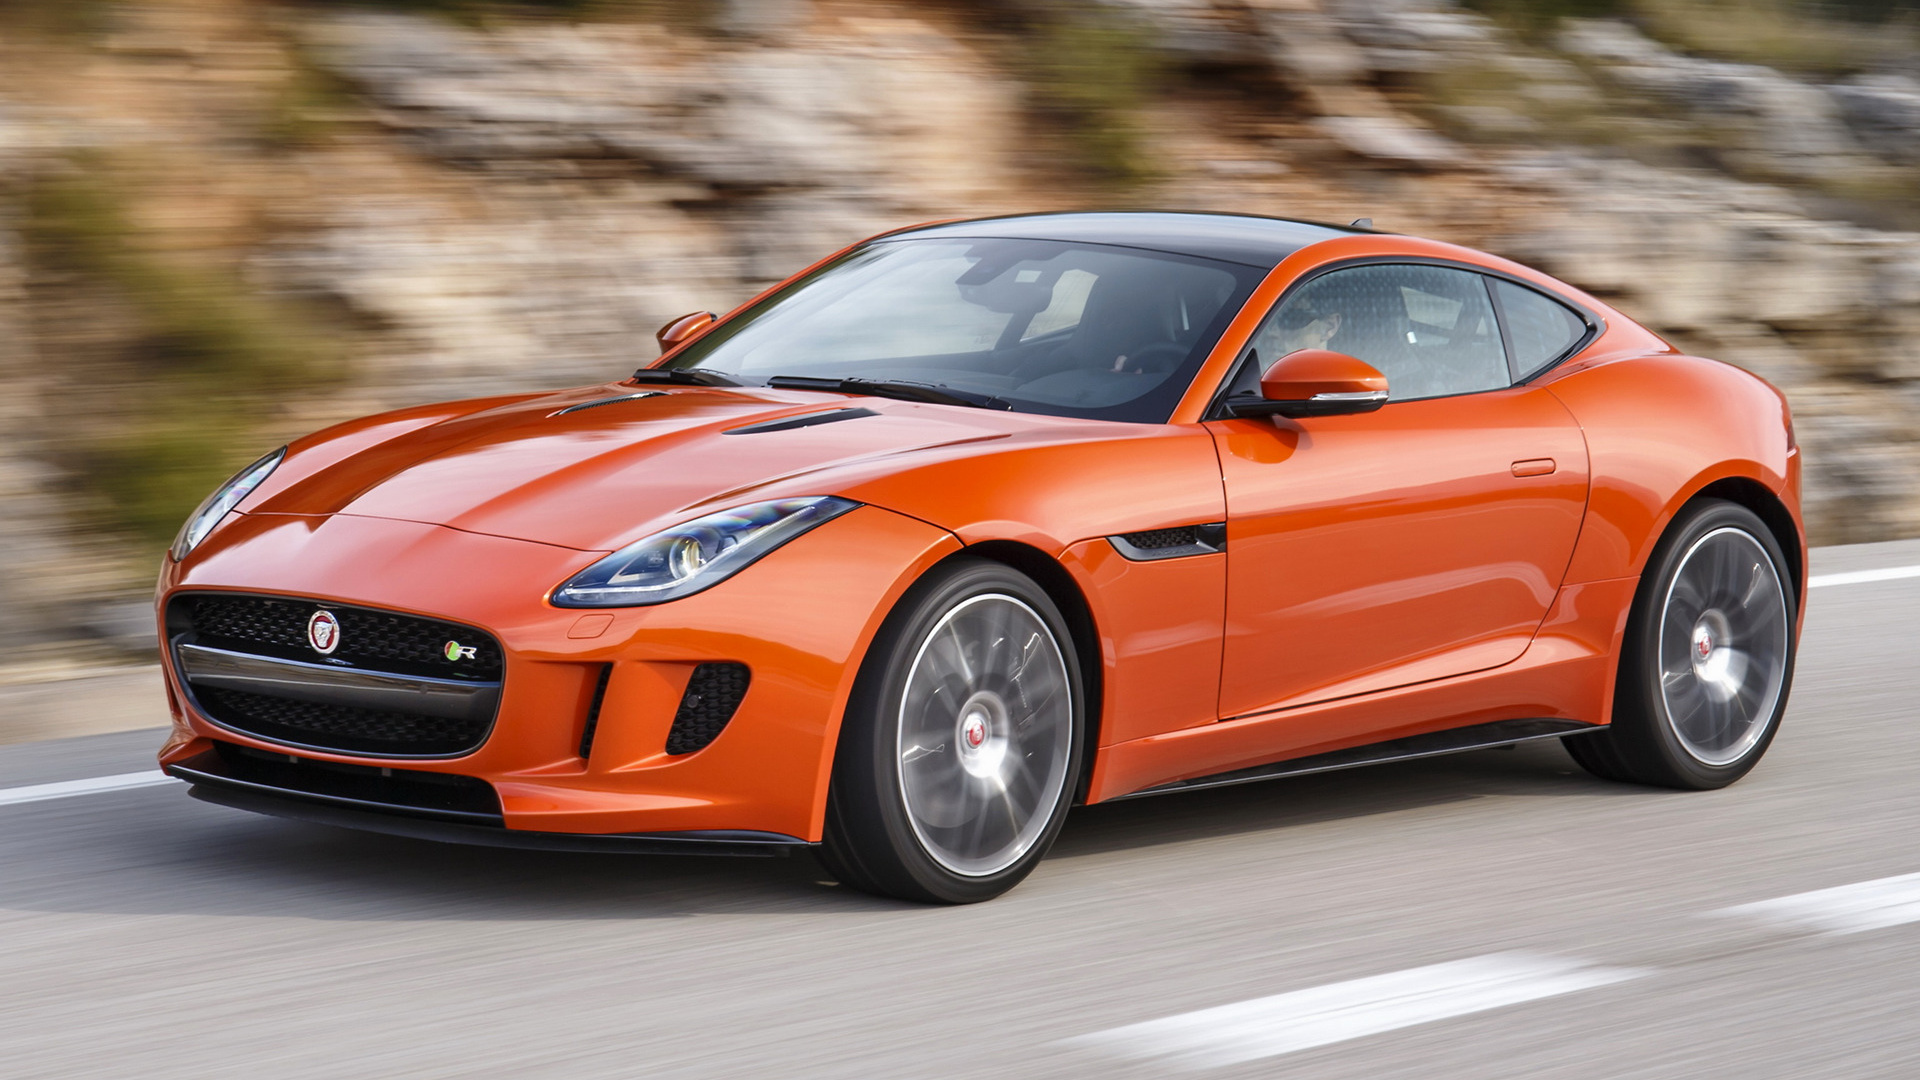 F Type Coupe >> 2014 Jaguar F-Type R Coupe - Wallpapers and HD Images | Car Pixel